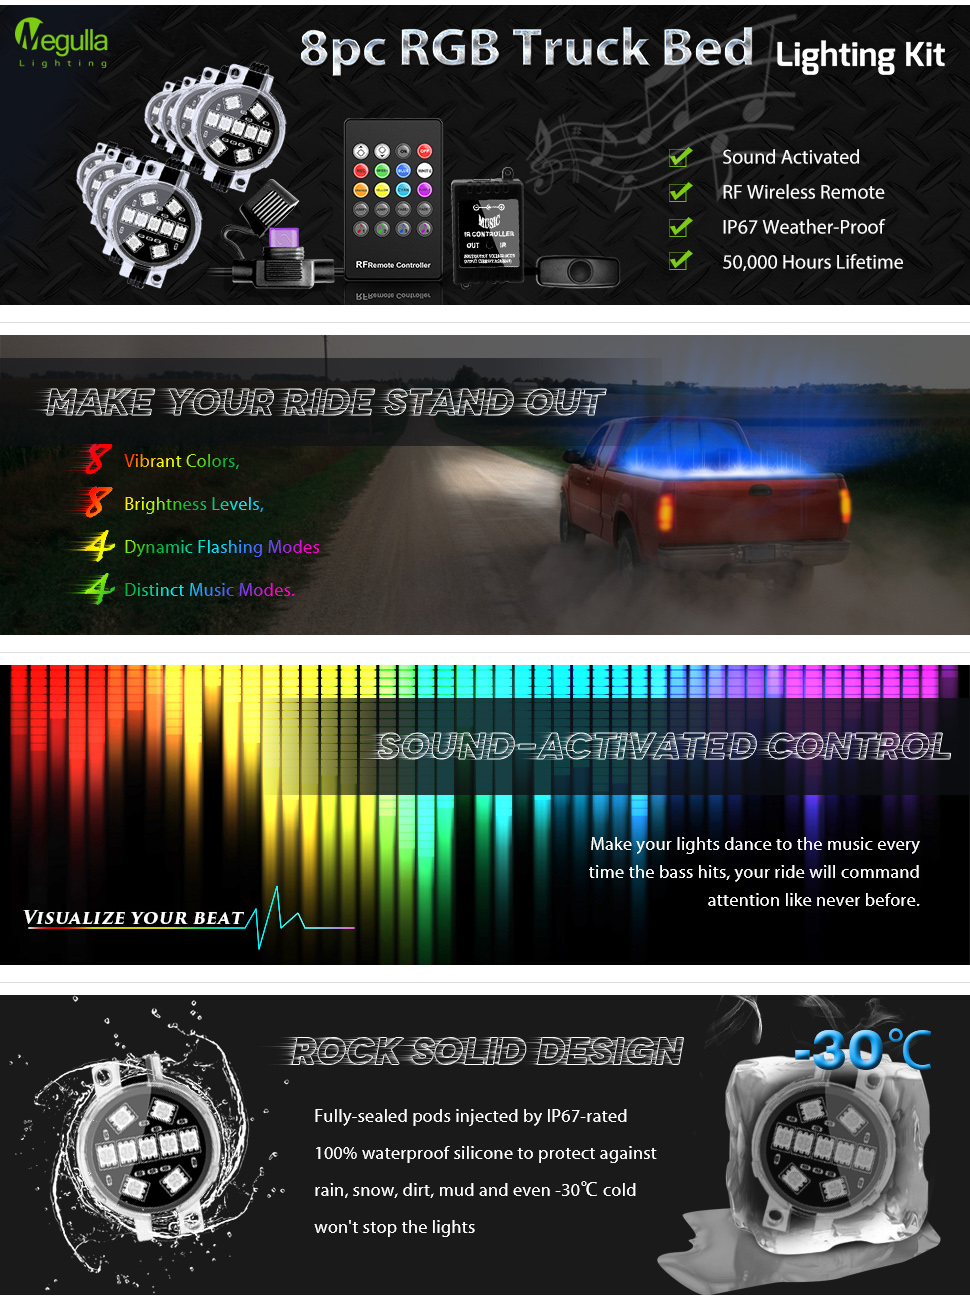 Led 8pc Rgb Truck Bed Lighting Kit Megulla Multi Color Ww Stock Trailer Wiring Harness For Lights System Mg Tbl101